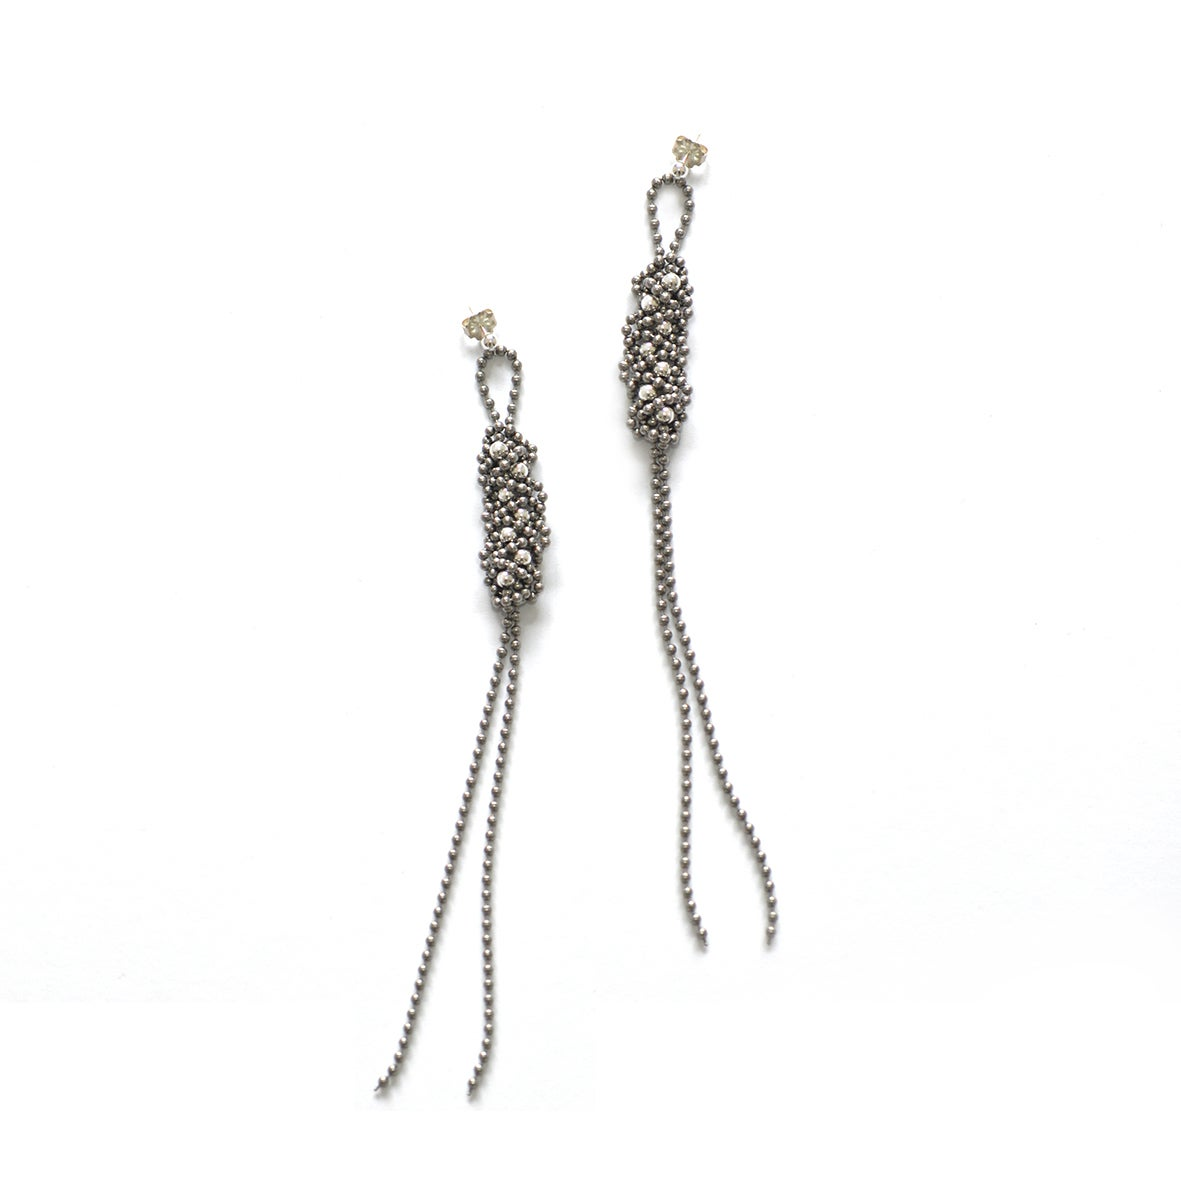 Image of STEEL+SILVER braid earrings